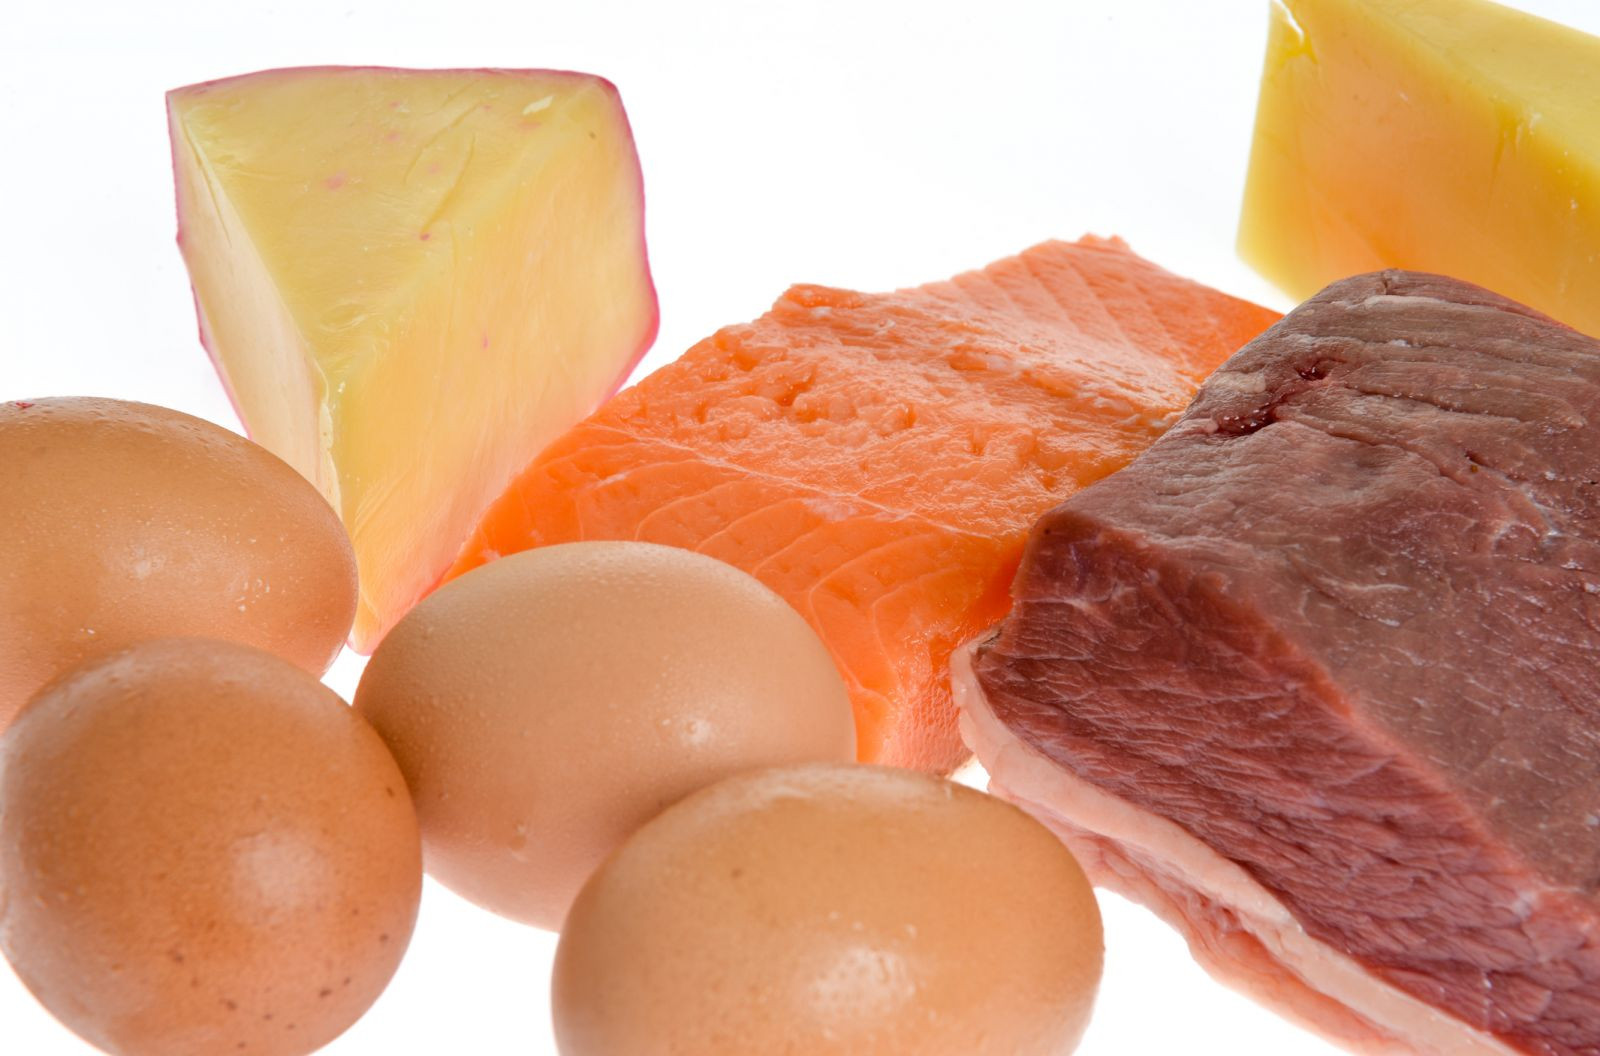 Foods with B12